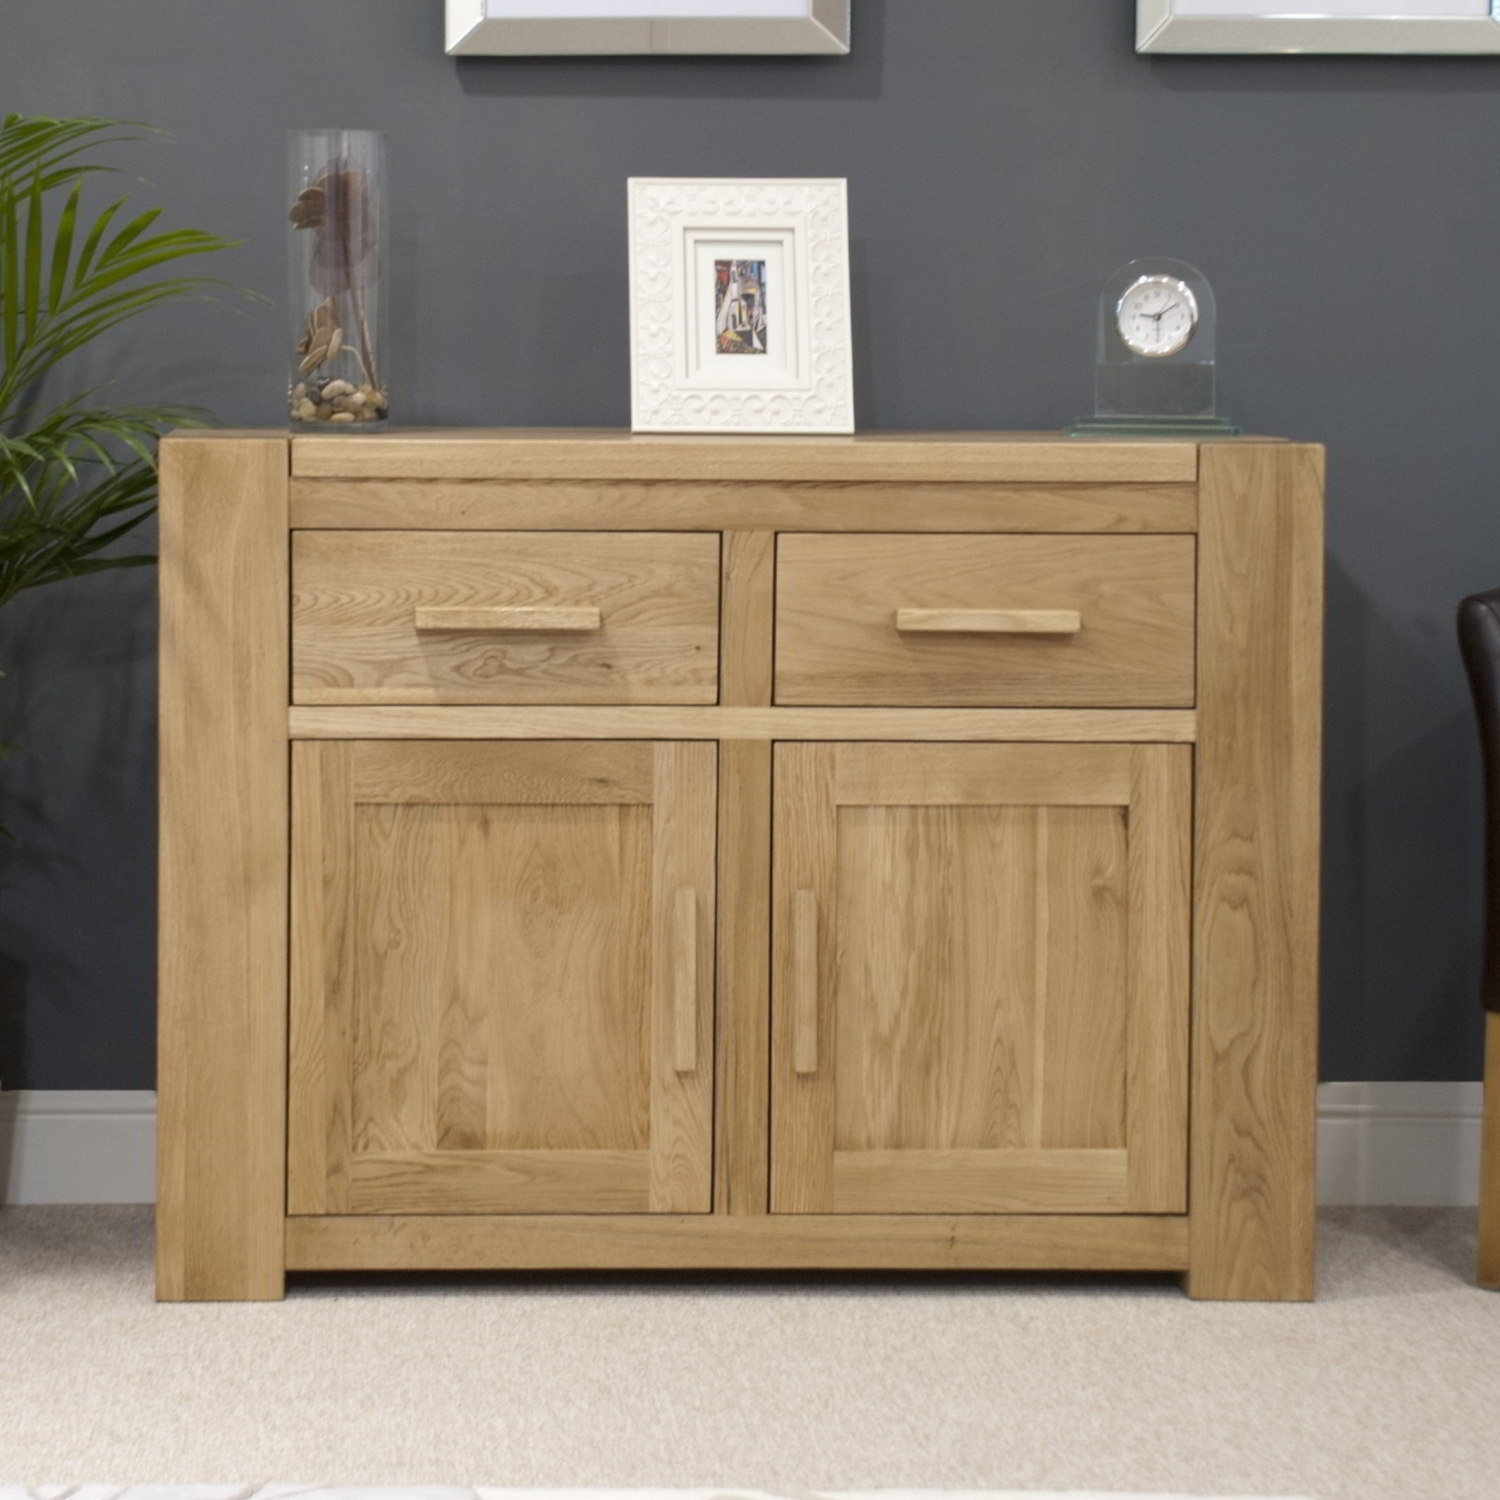 Living Room Sideboard | Baci Living Room within Jaxon Sideboards (Image 23 of 30)